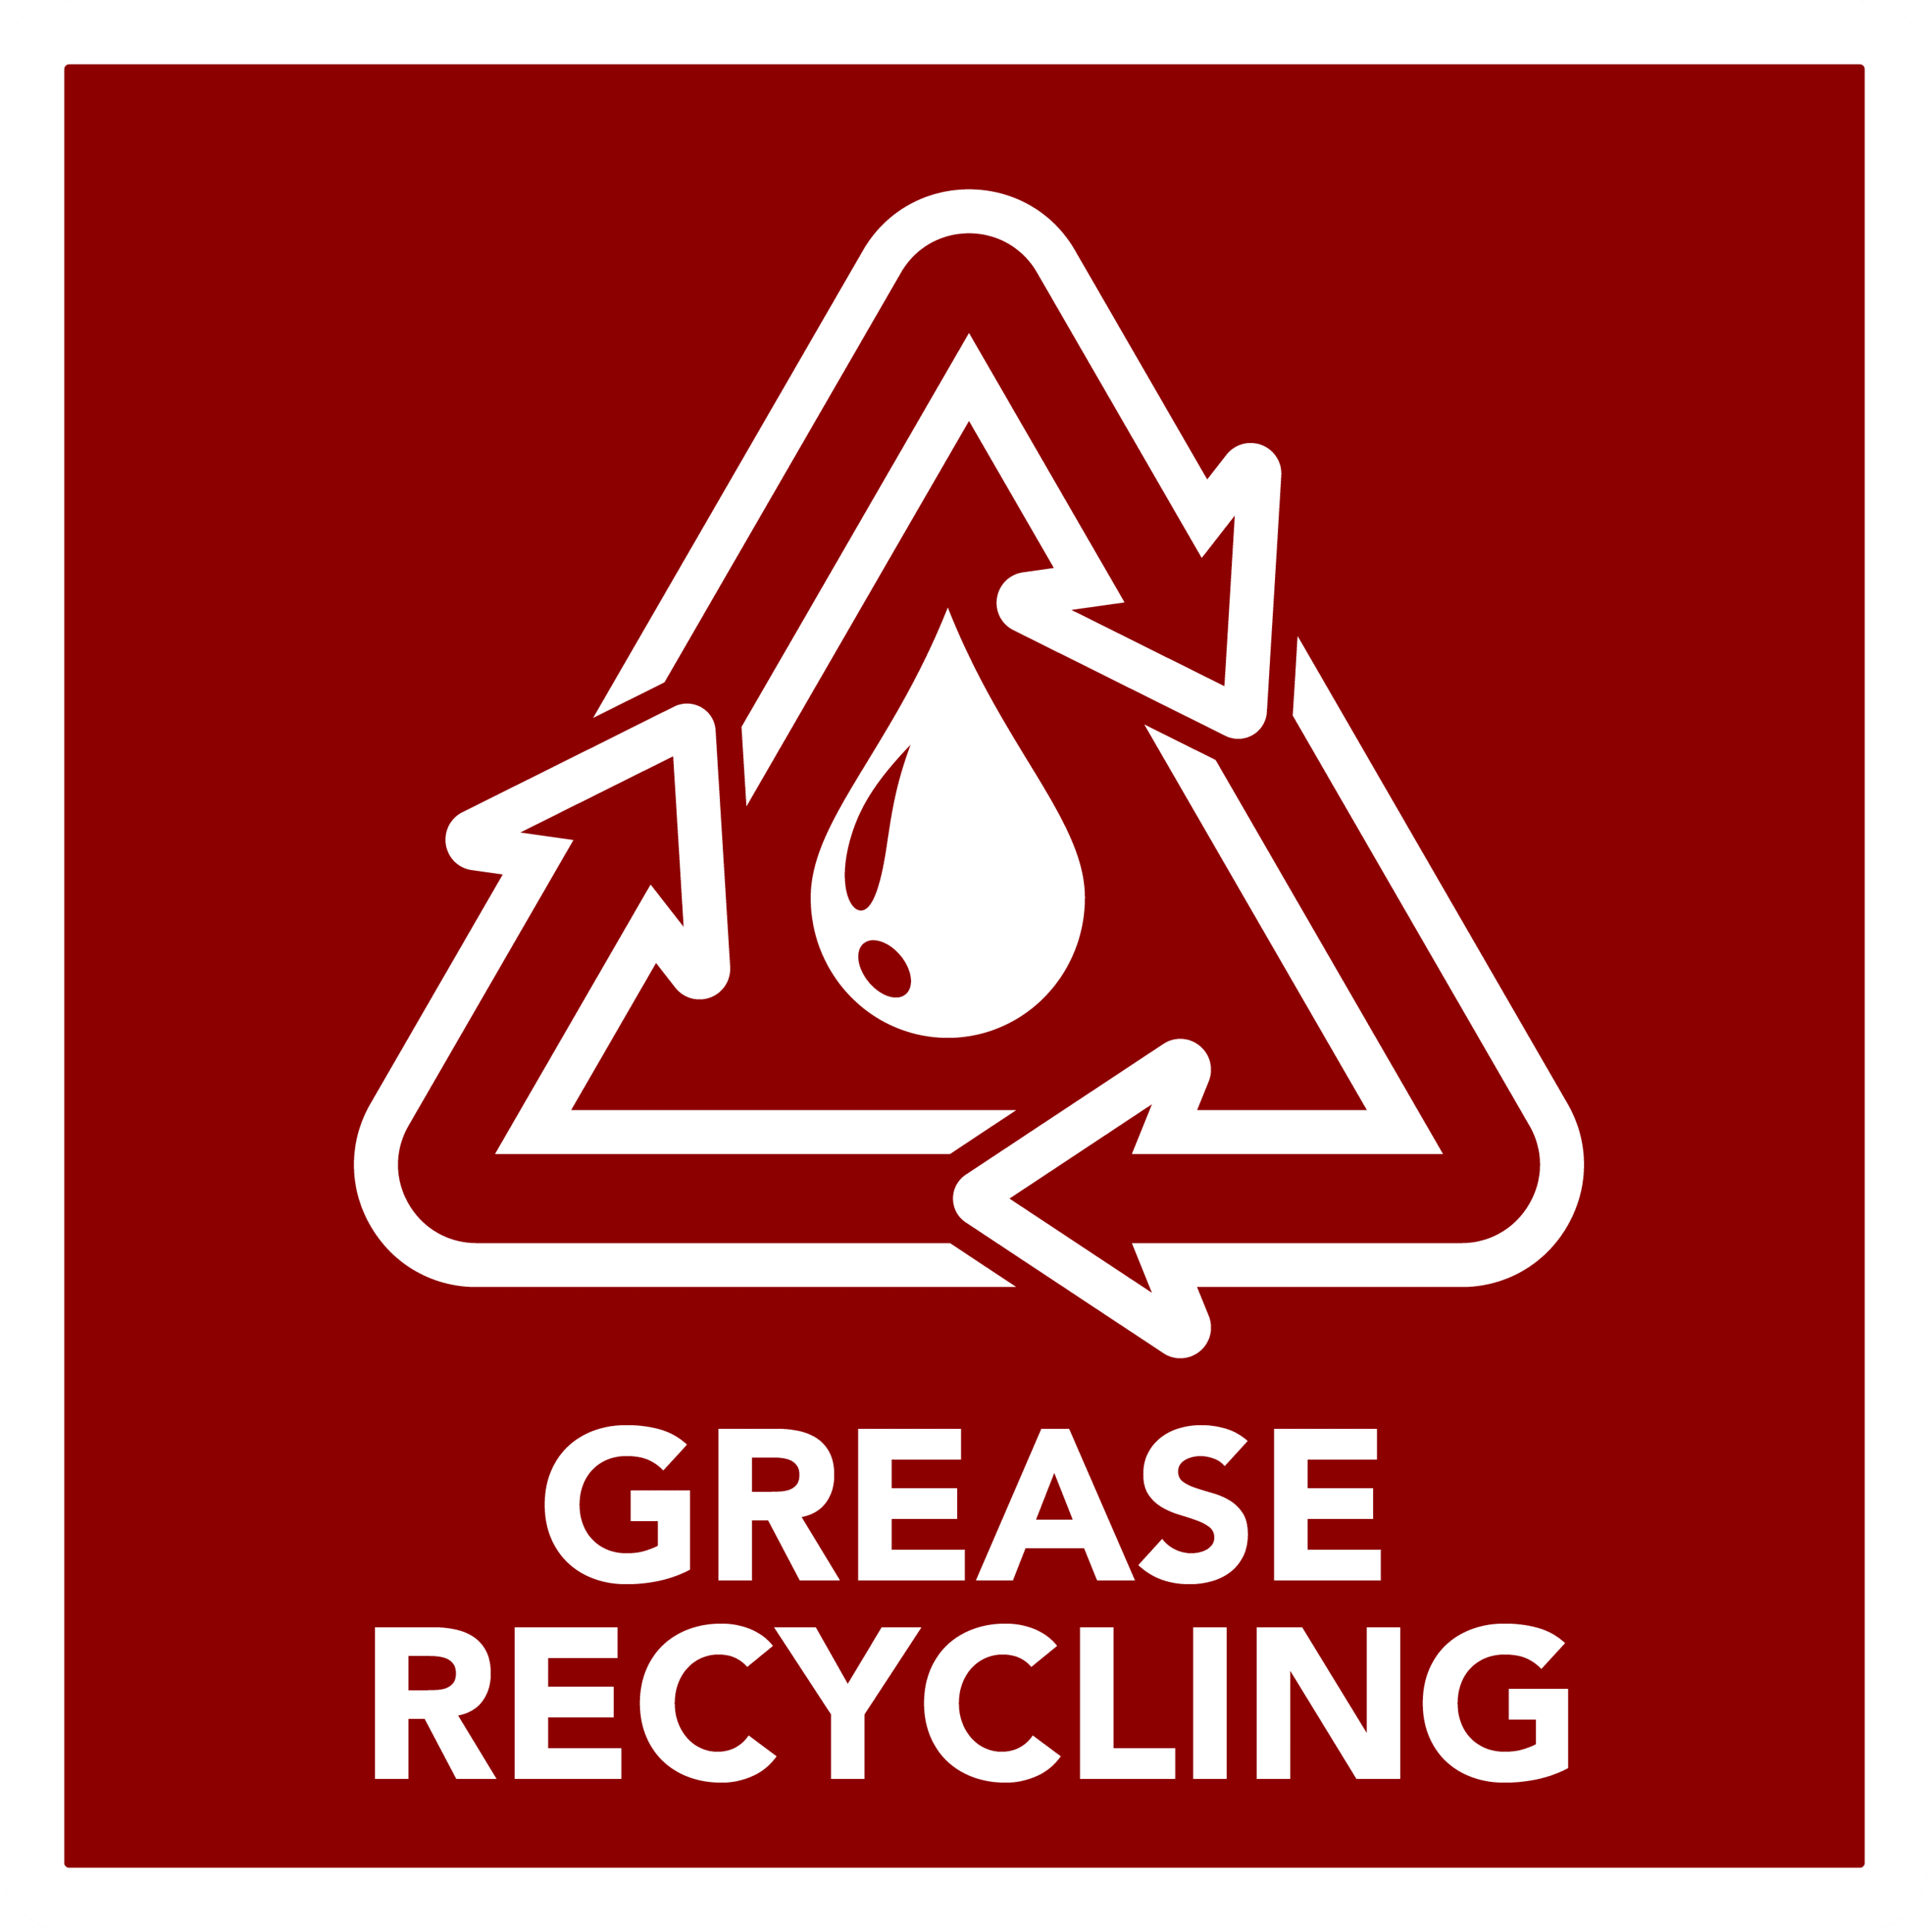 Grease Recycling-Grease